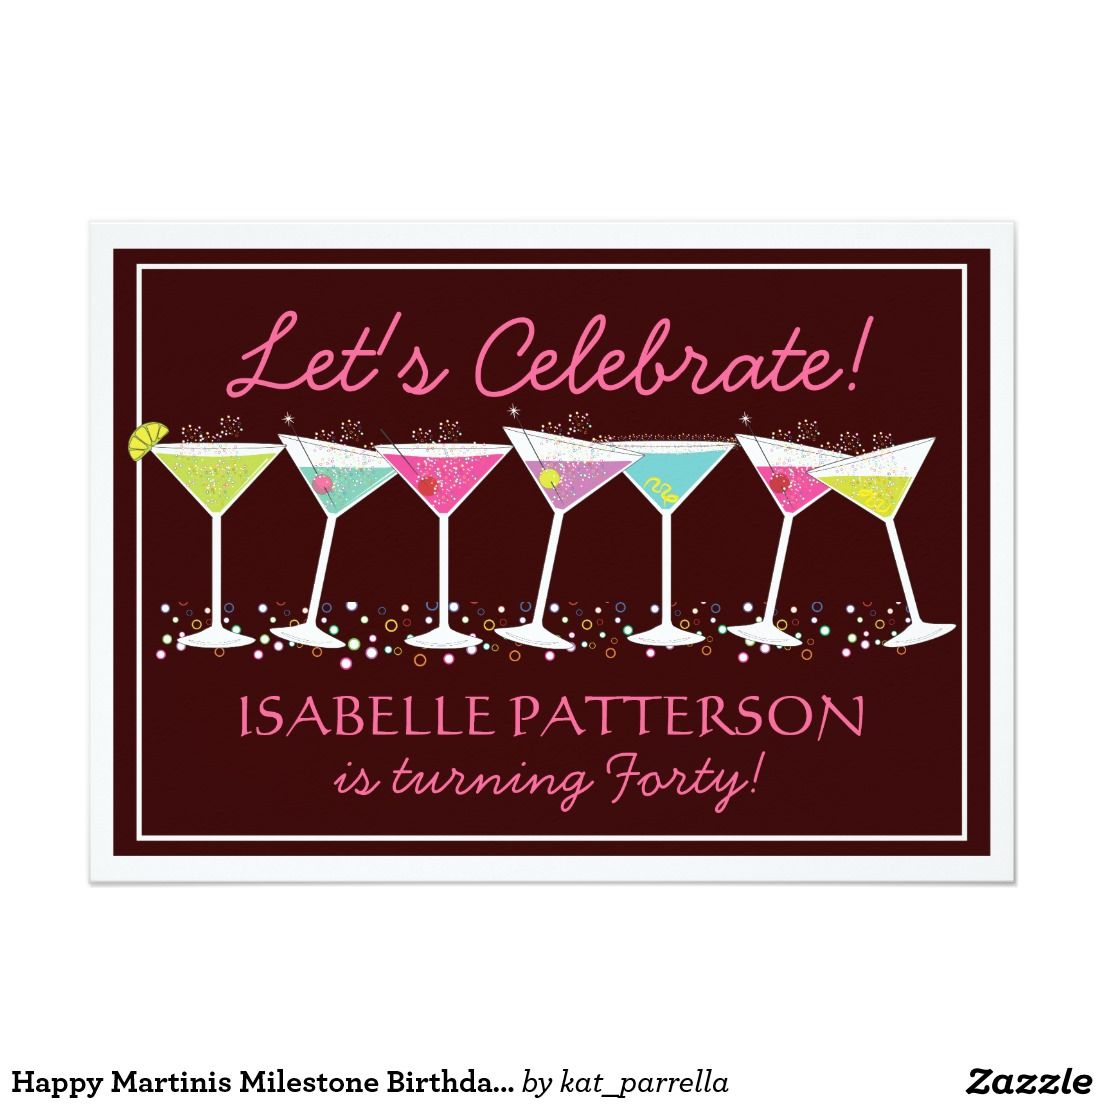 Happy Martinis Milestone Birthday Party Invitation | Pinterest ...